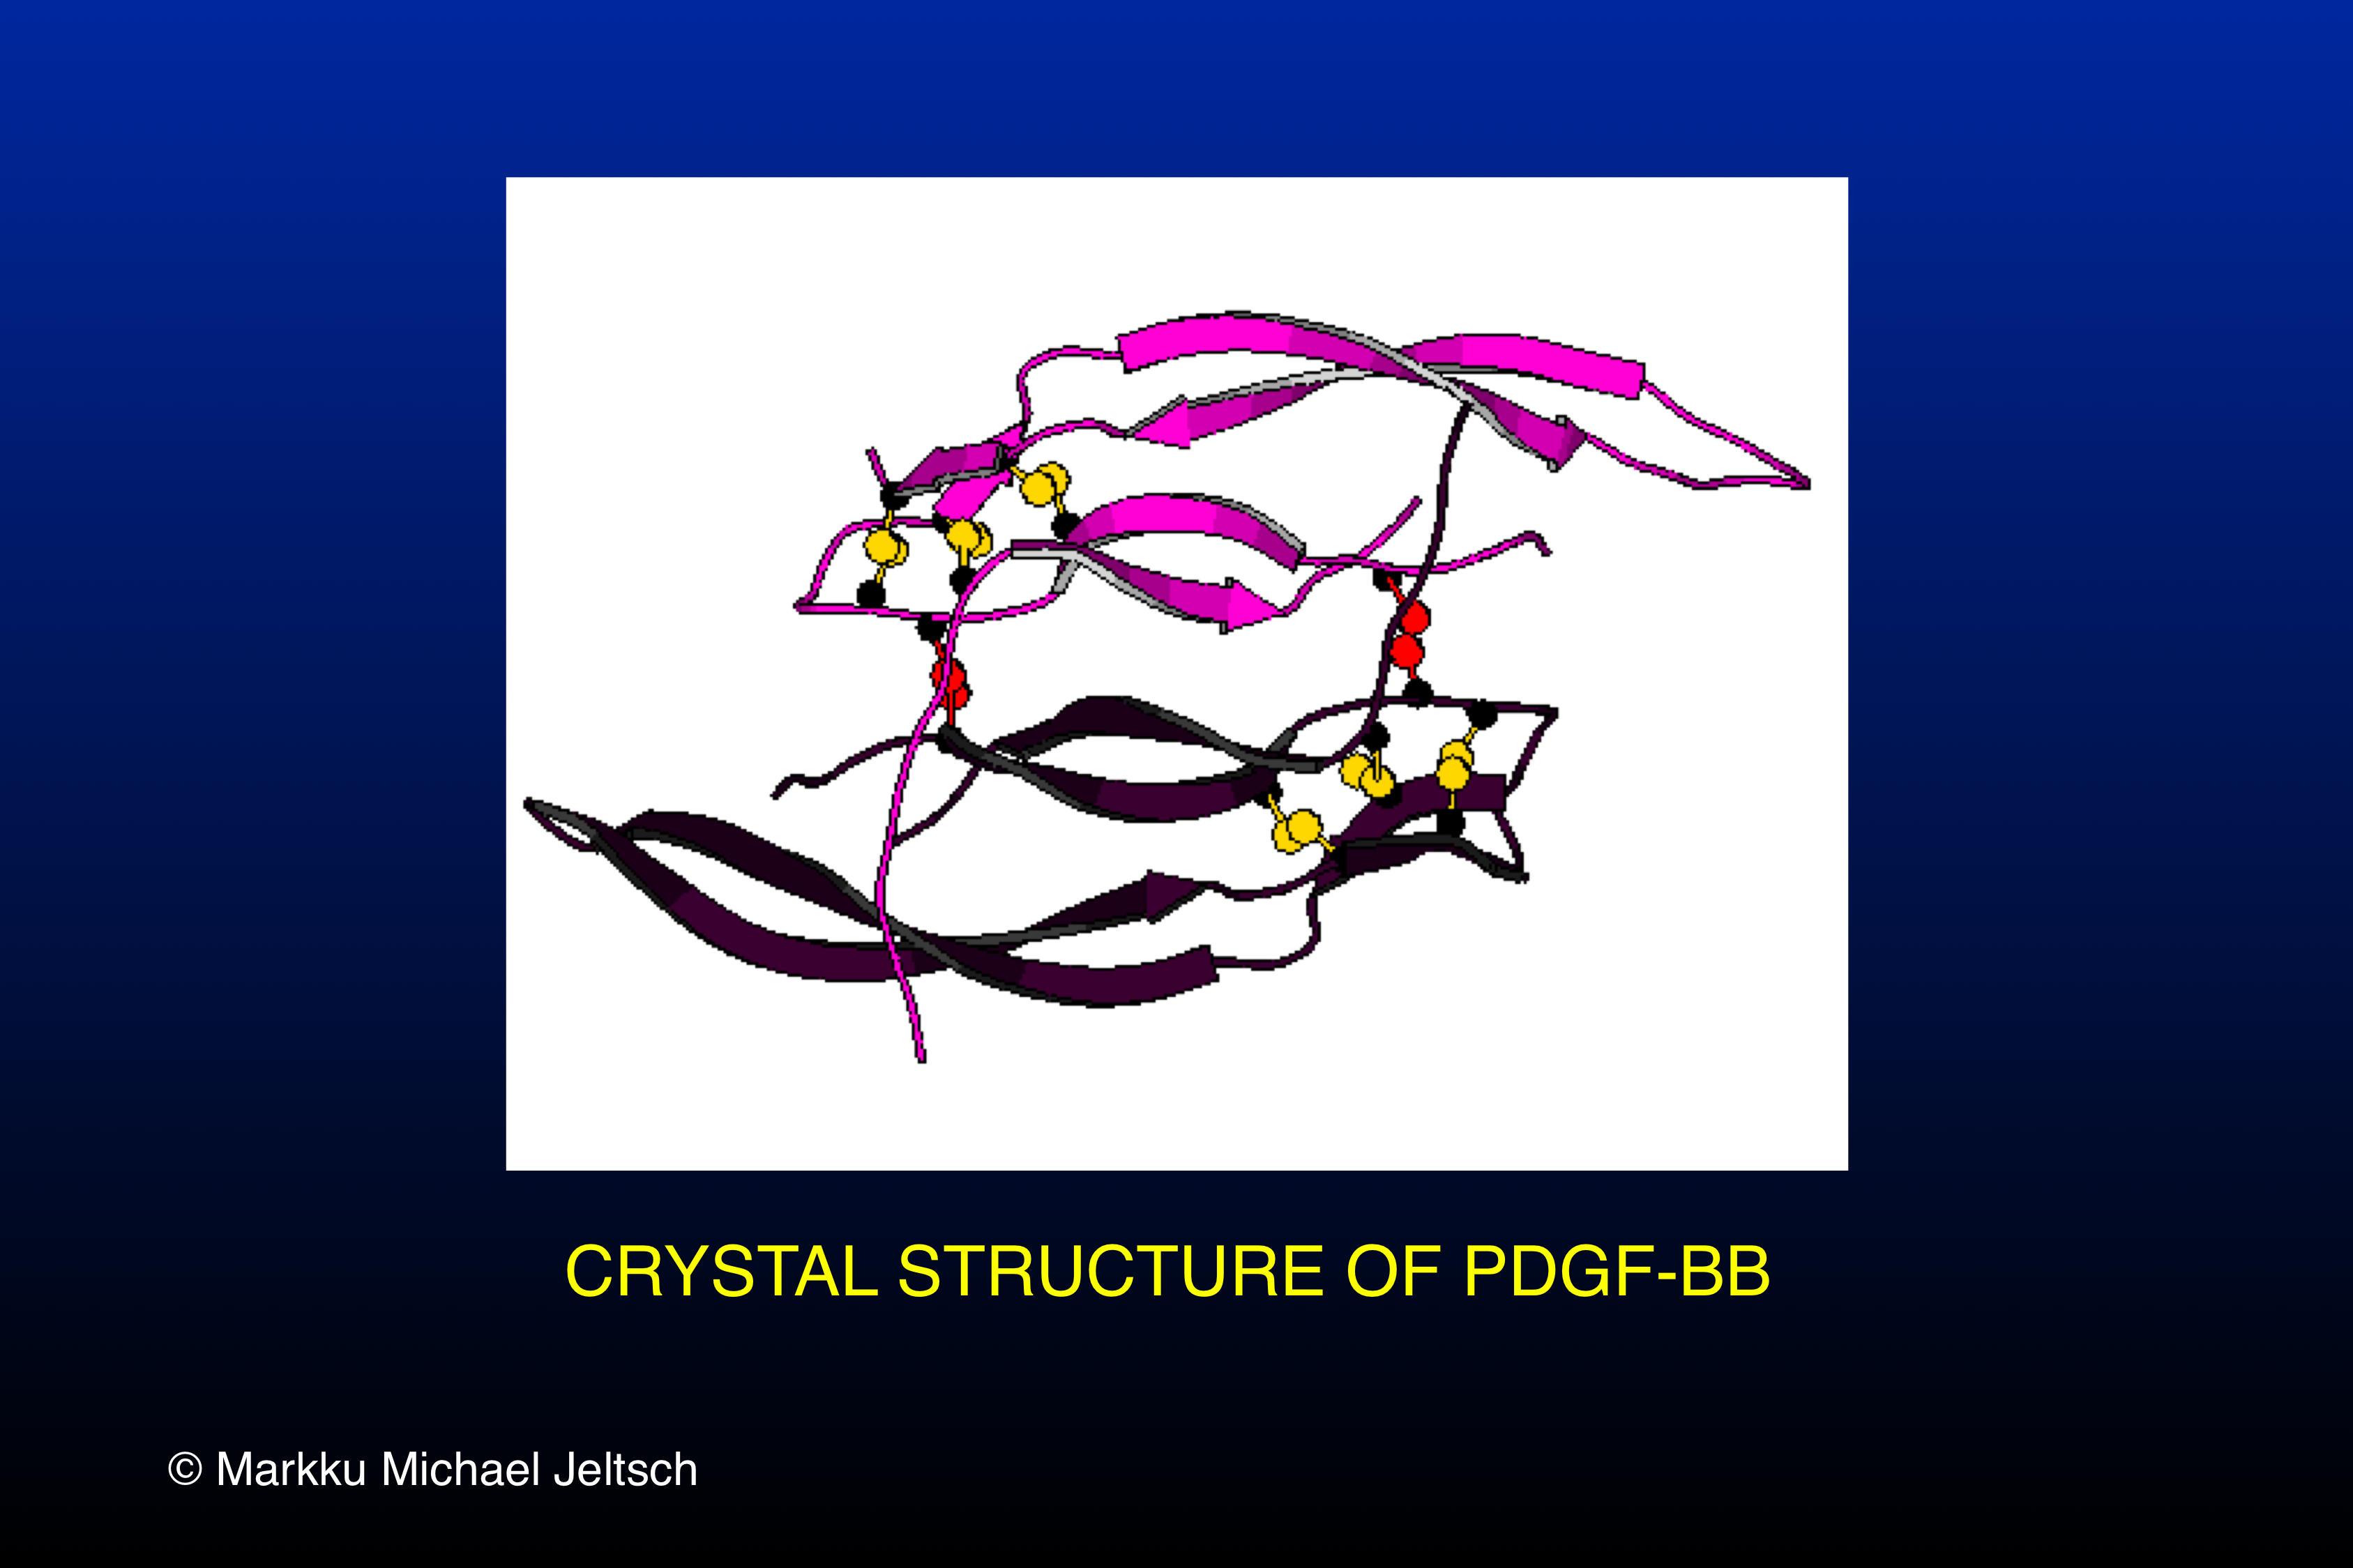 crystal structure of PDGF-BB